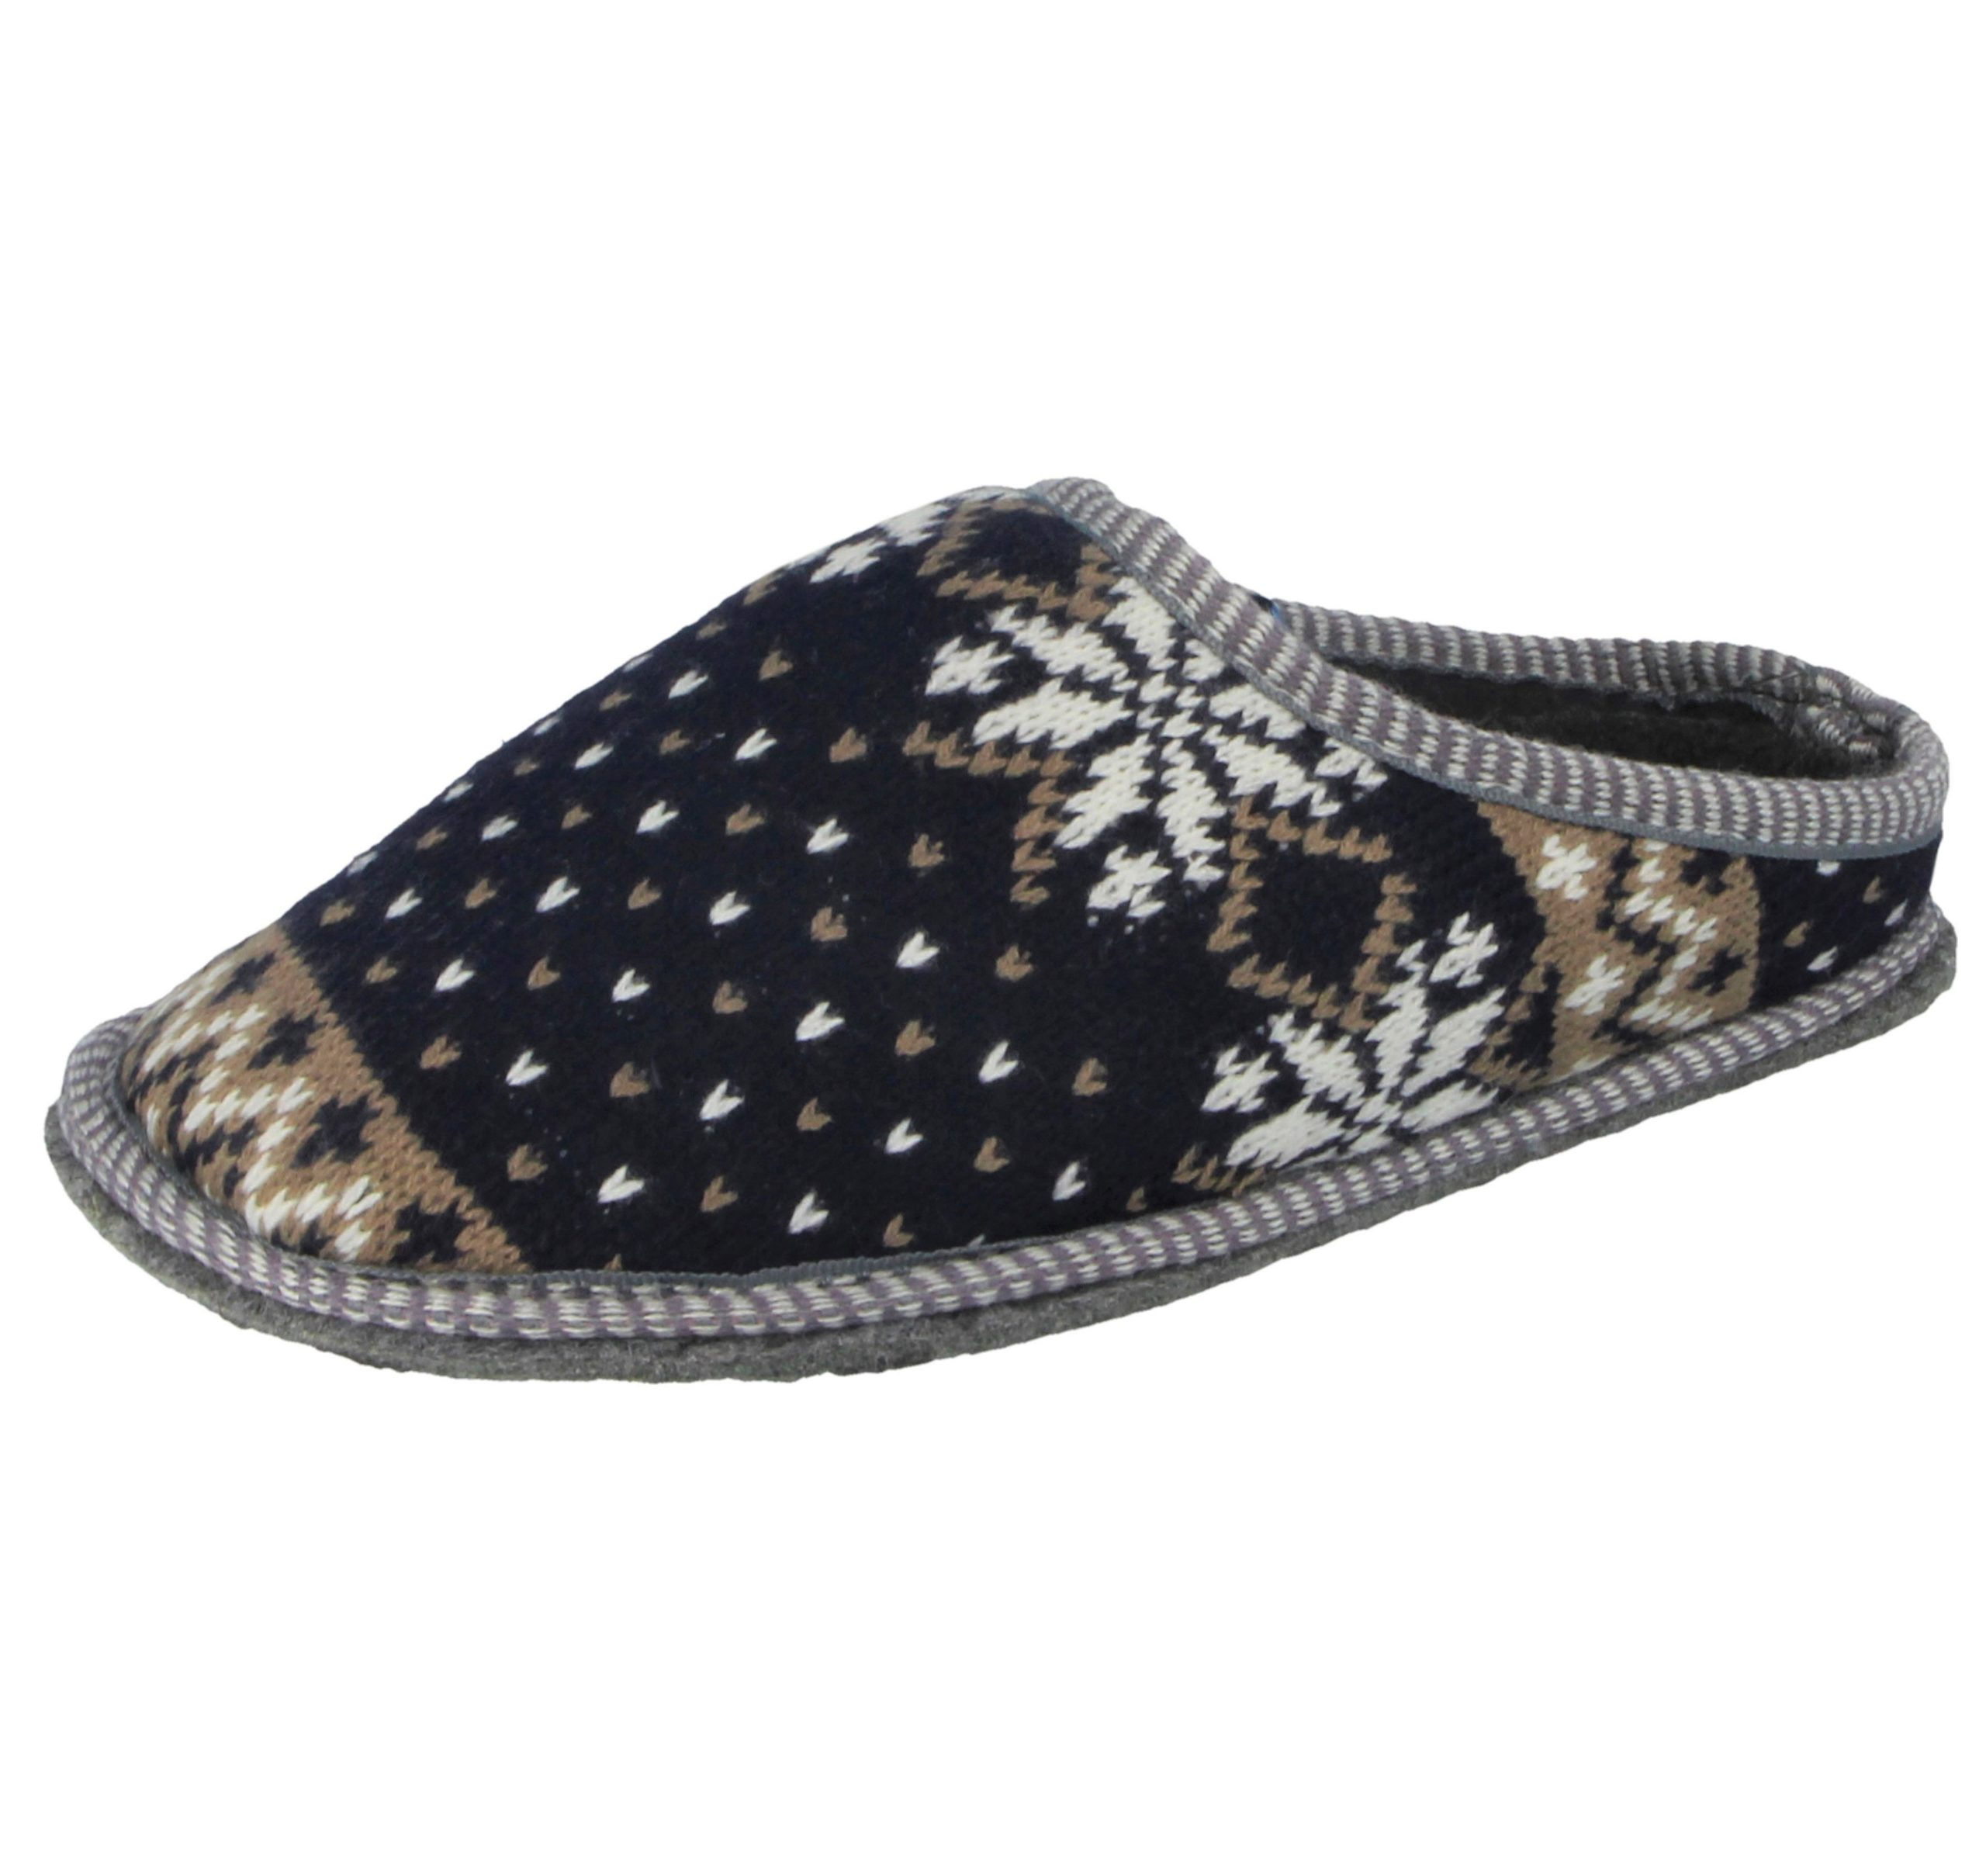 Womens Mule Slippers Cable Knit Glittery Black Red Ladies UK Size 3 4 5 6 7 8